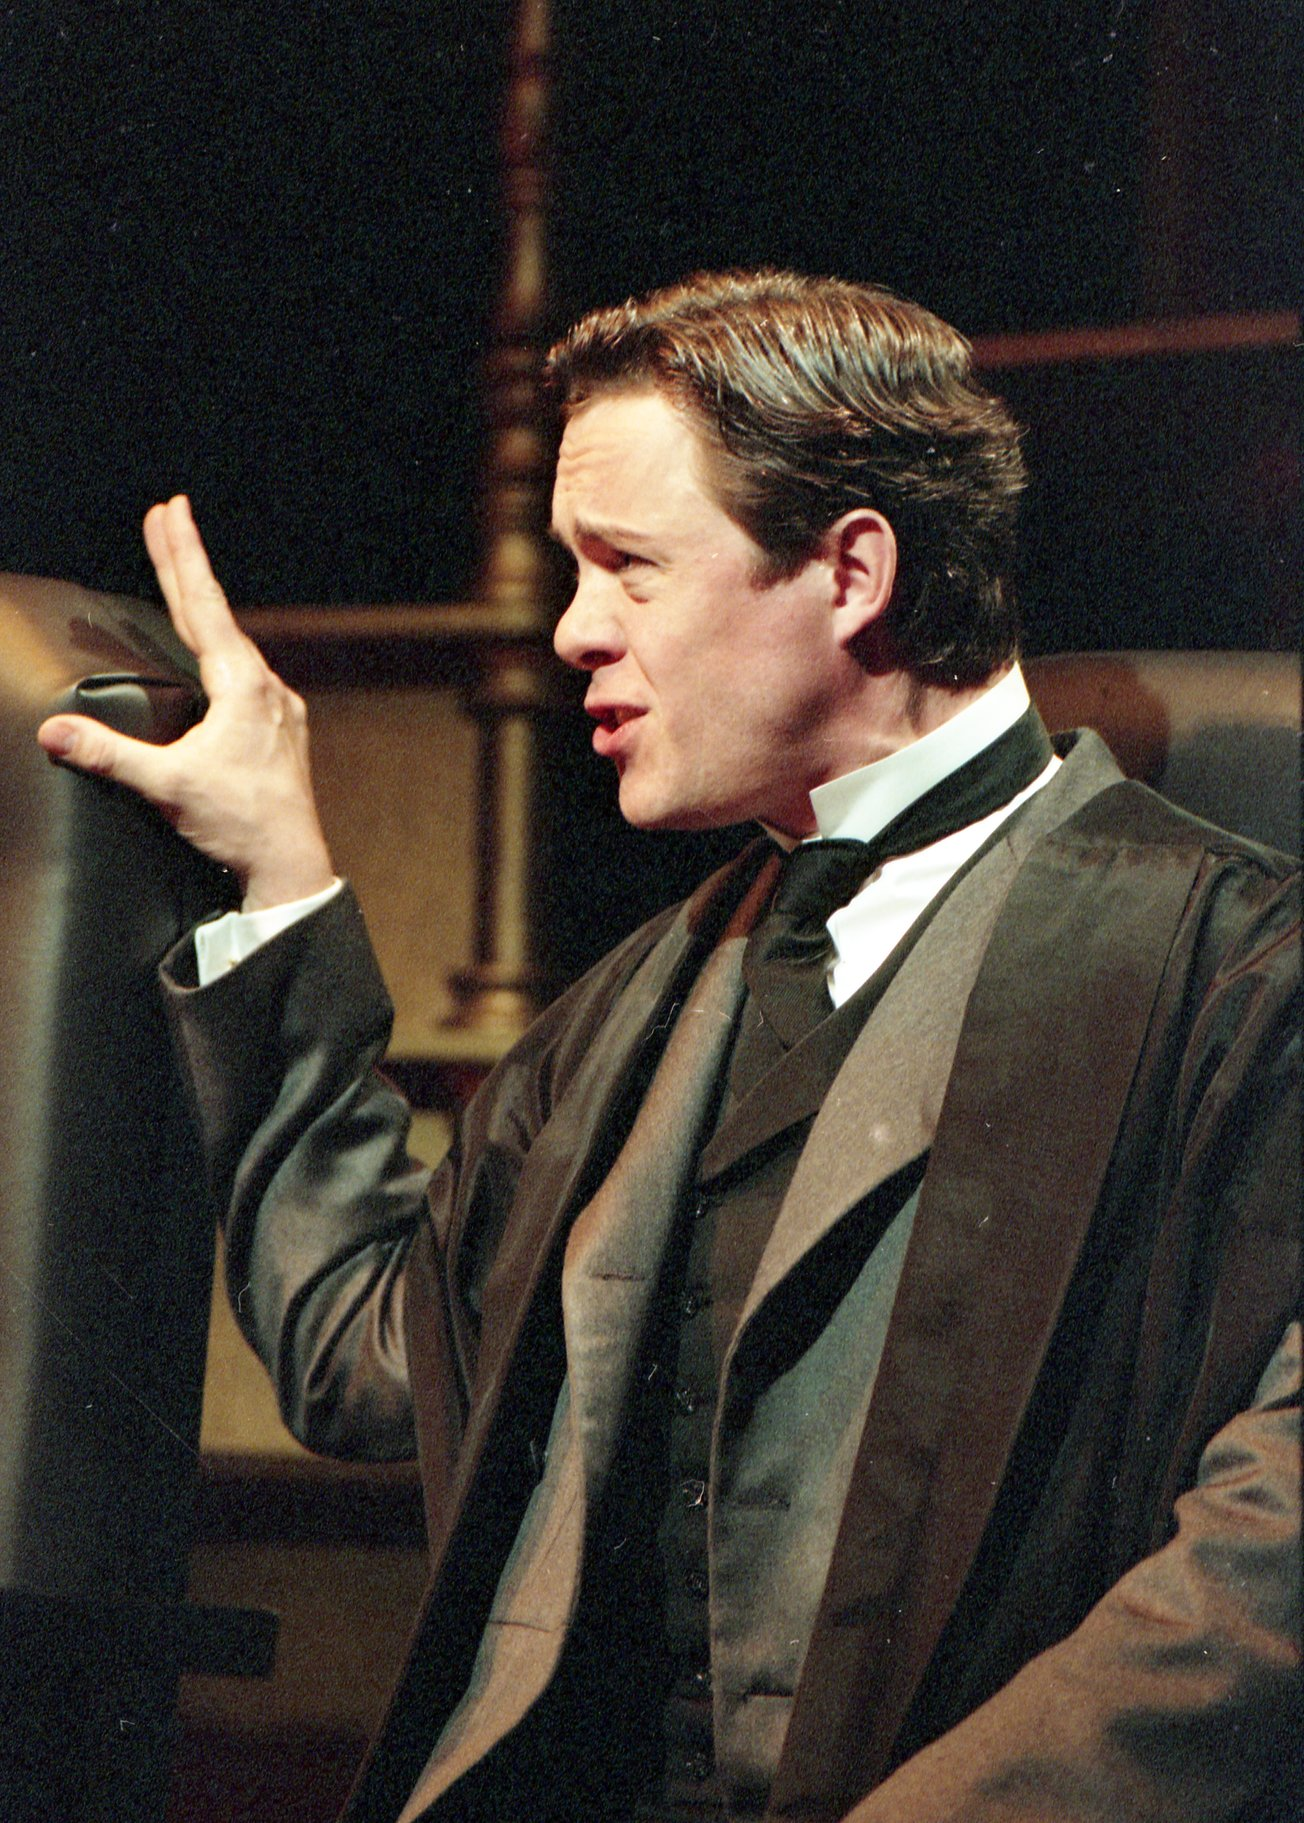 A man in black suit and robes.